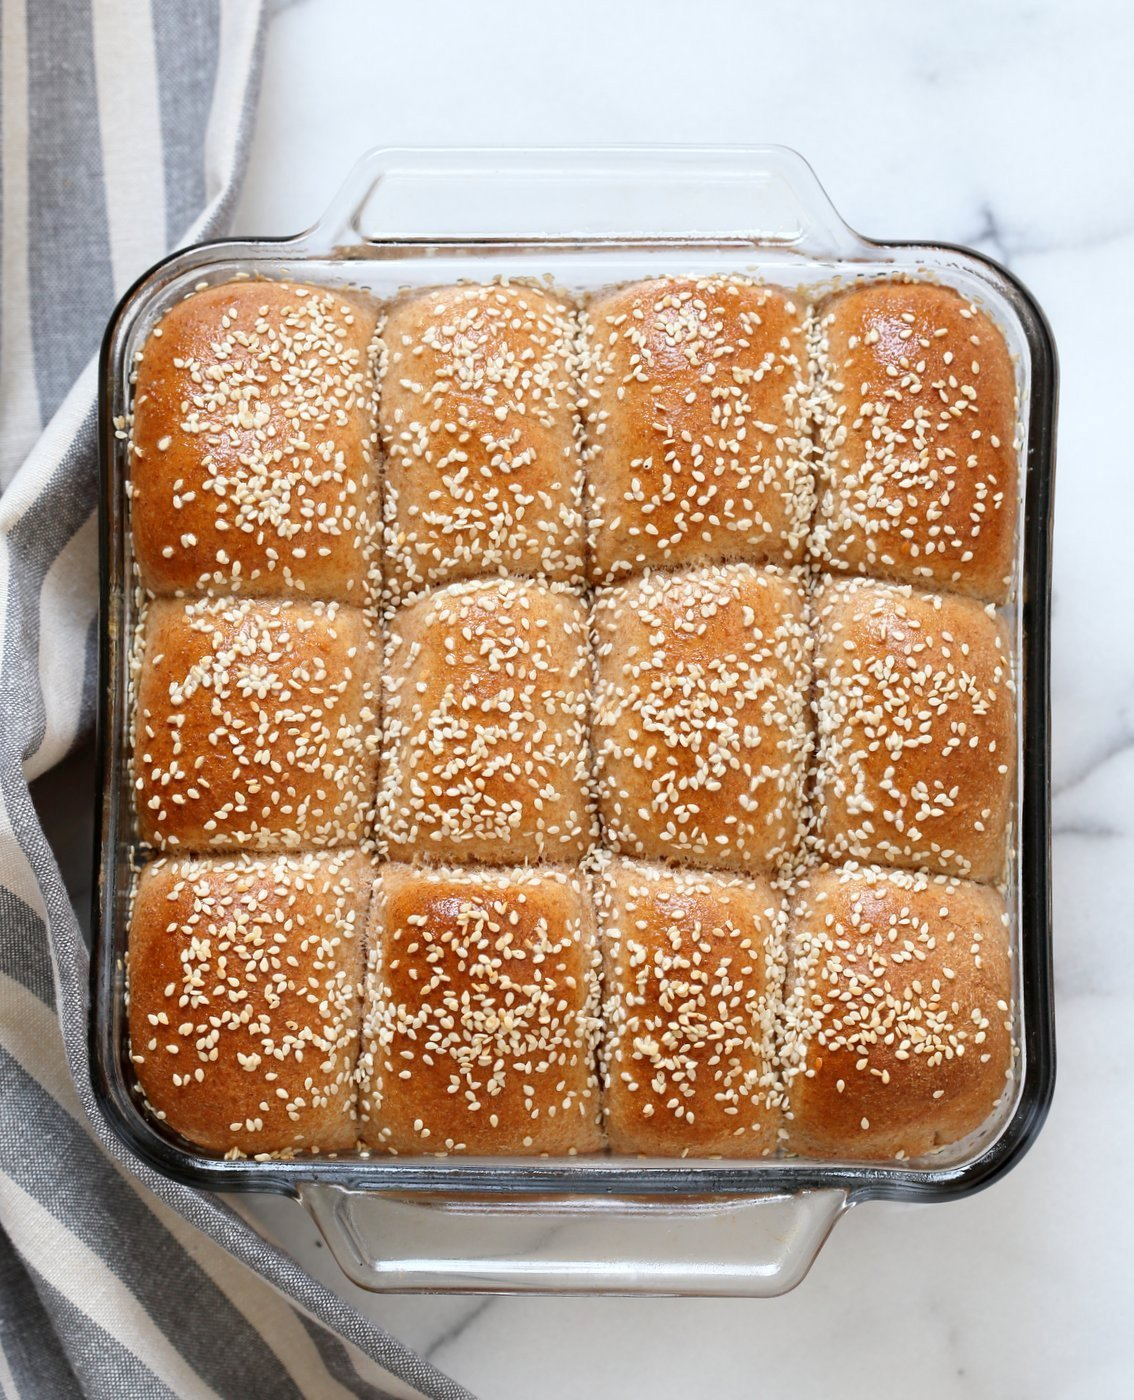 Soft Whole Wheat Dinner Rolls. Moist and soft Whole wheat Rolls 100% Whole grain rolls. Use as Wheat Buns for Burgers or Sliders. Vegan Whole Grain Dinner Rolls. Soy-free Palm Oil-free Recipe | VeganRicha.com